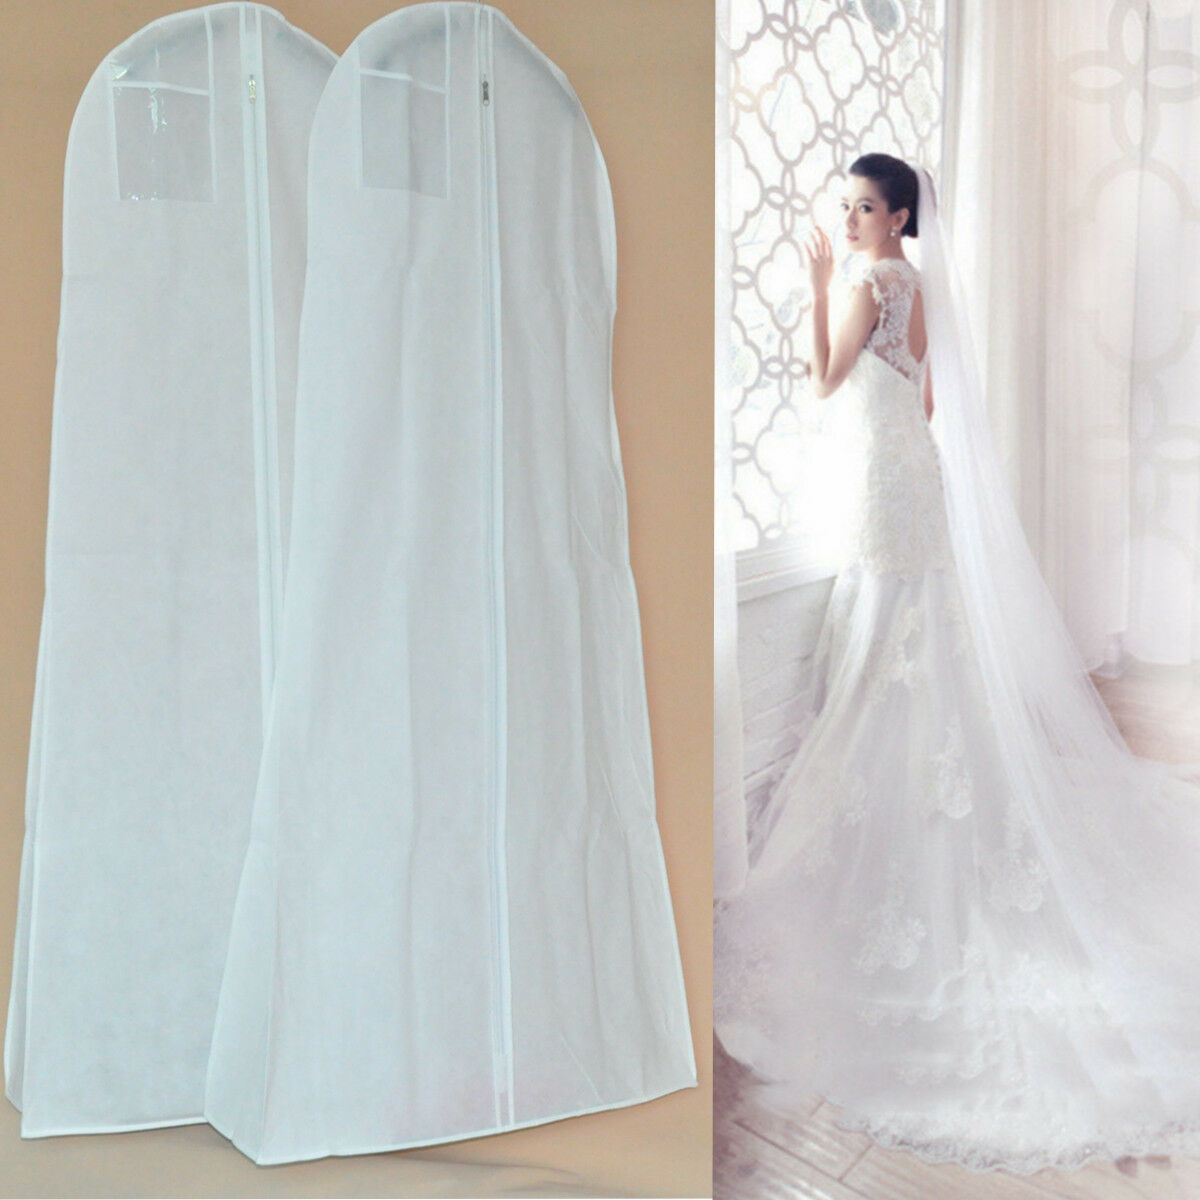 Extra Large Wedding Dress Bridal Gown Garment Breathable Cover ...